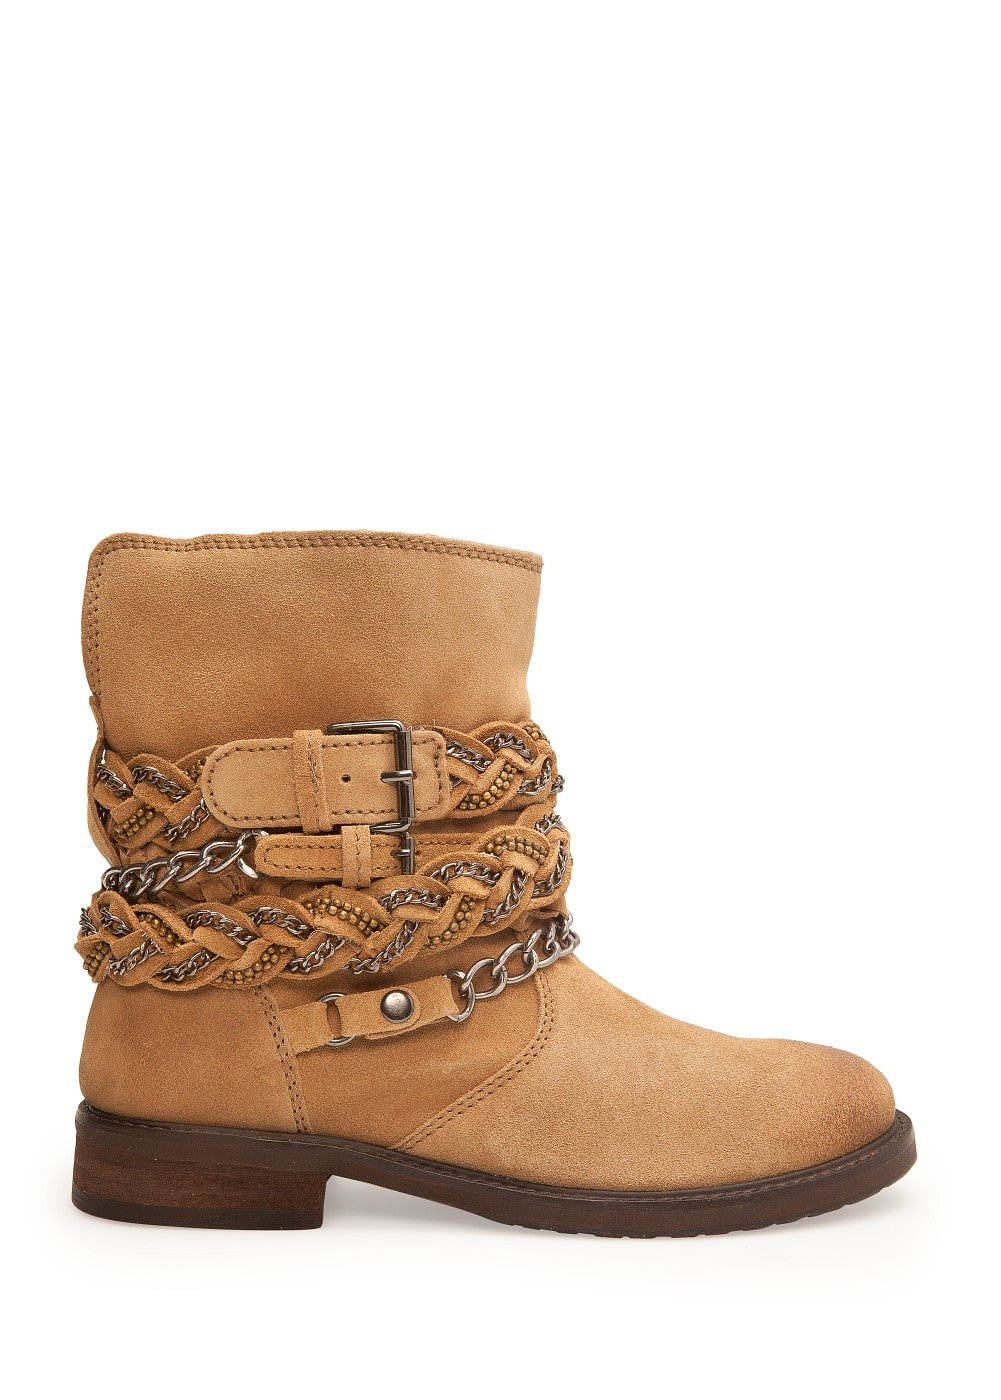 Chain suede ankle boots